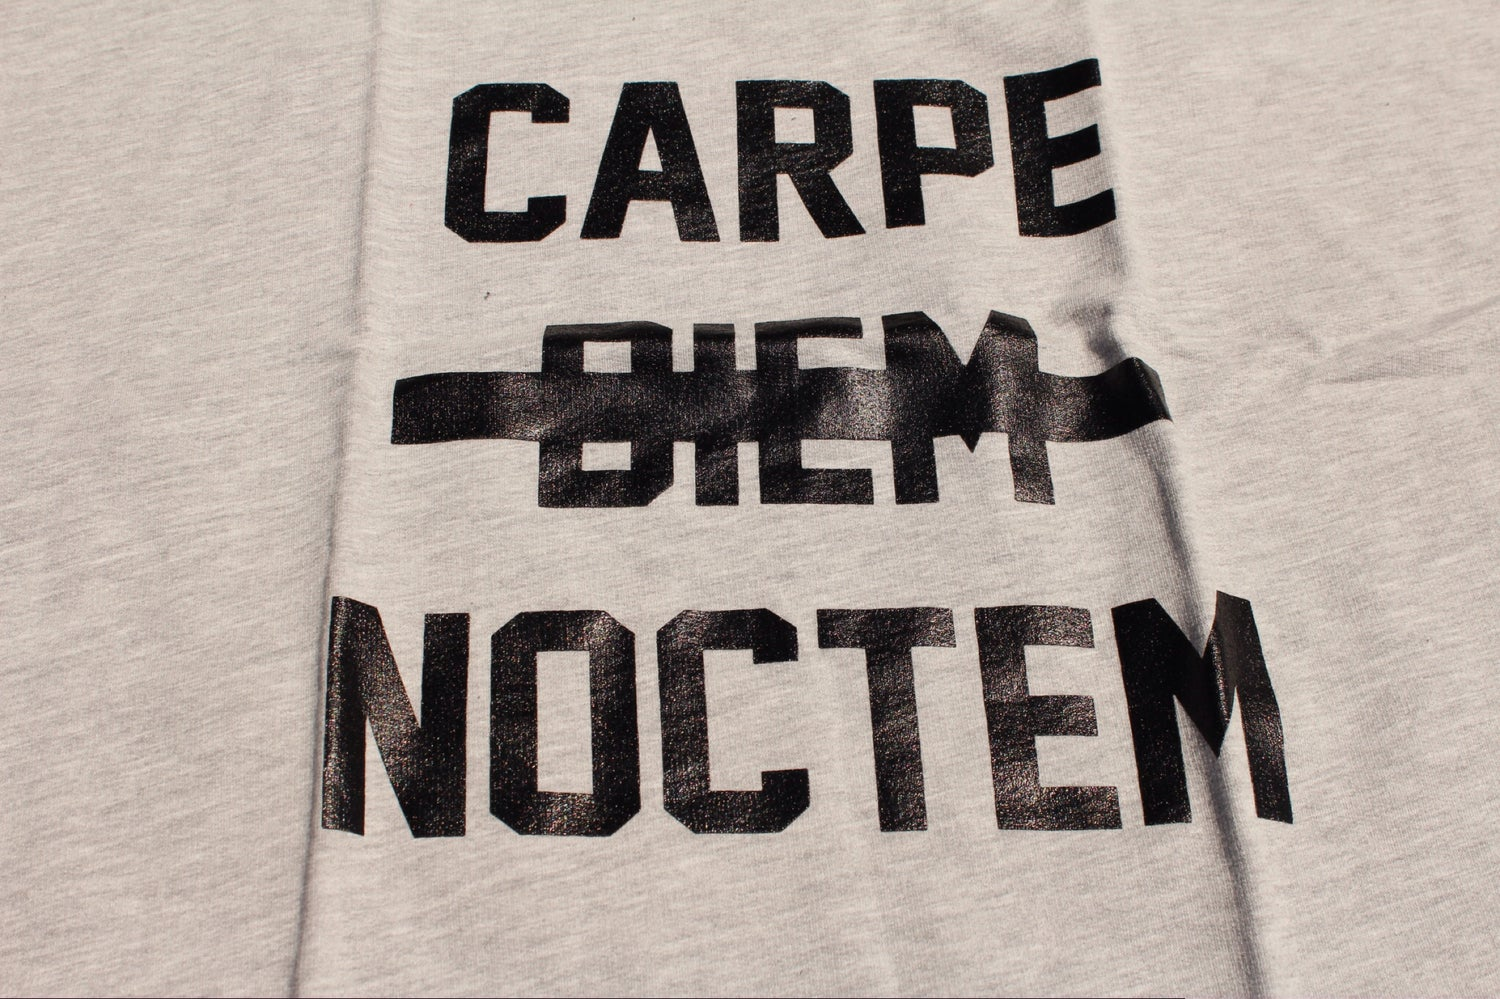 Image of Carpe Noctem Womens (Sieze The Night)